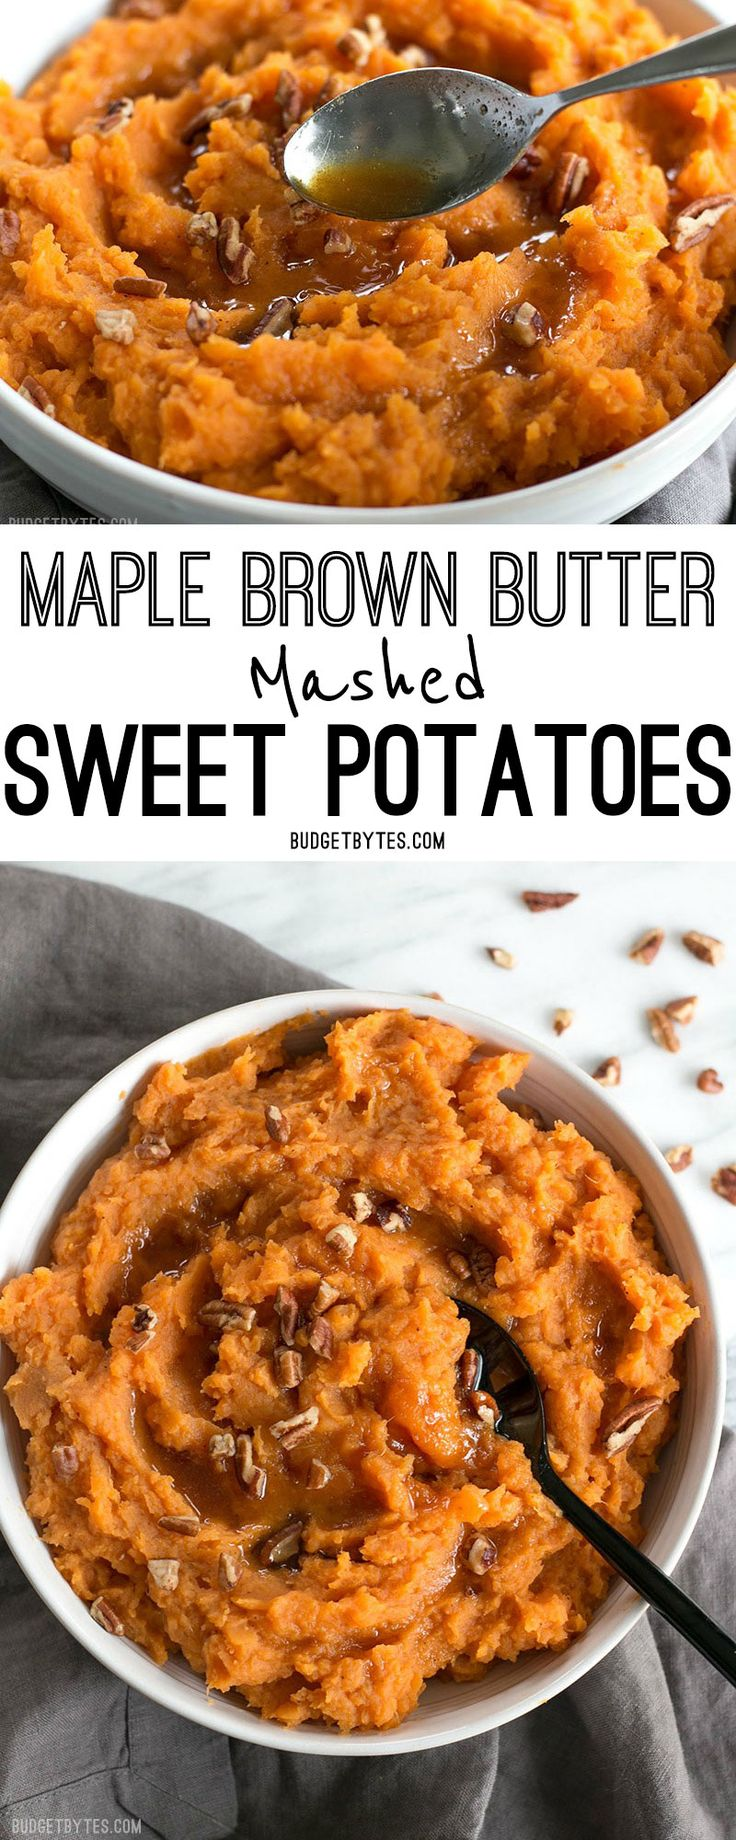 Maple Brown Butter Mashed Sweet Potatoes | Budget Bytes | this is a simple way to add a little something extra special to your Thanksgiving table.